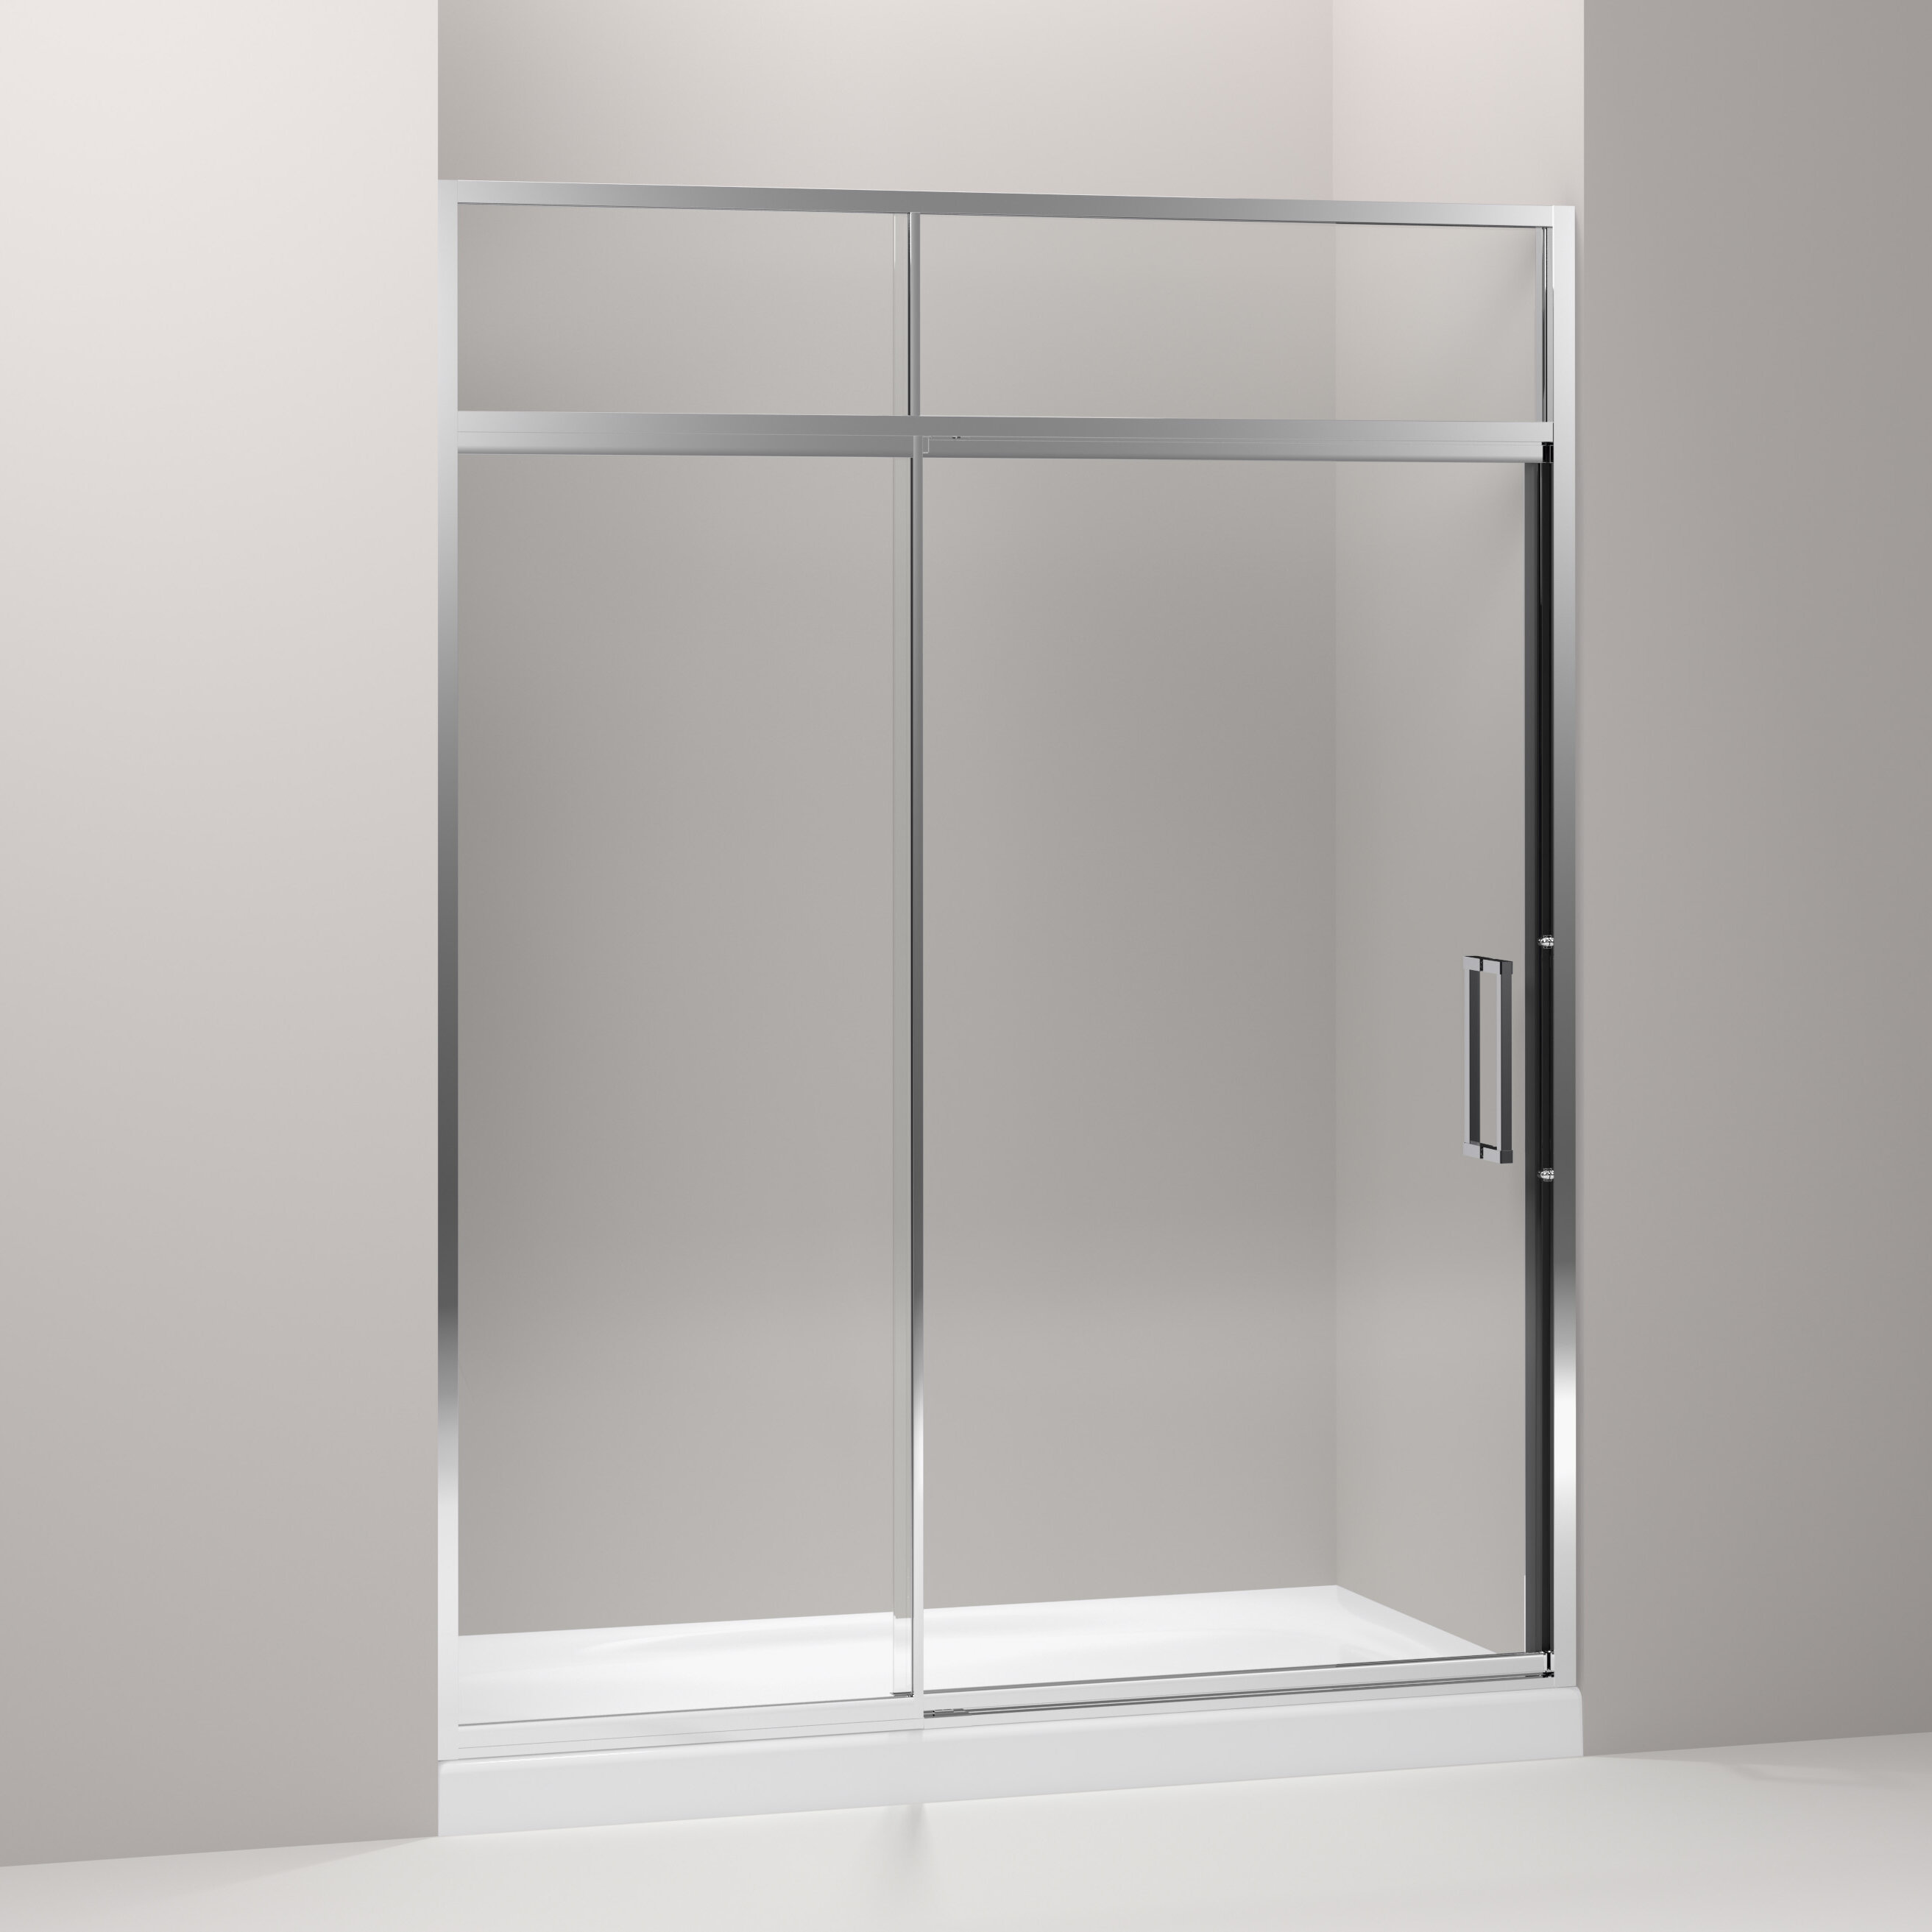 Lattis 60 X 89 5 Pivot Shower Door With Sliding Steam Transom With Cleancoat Technology